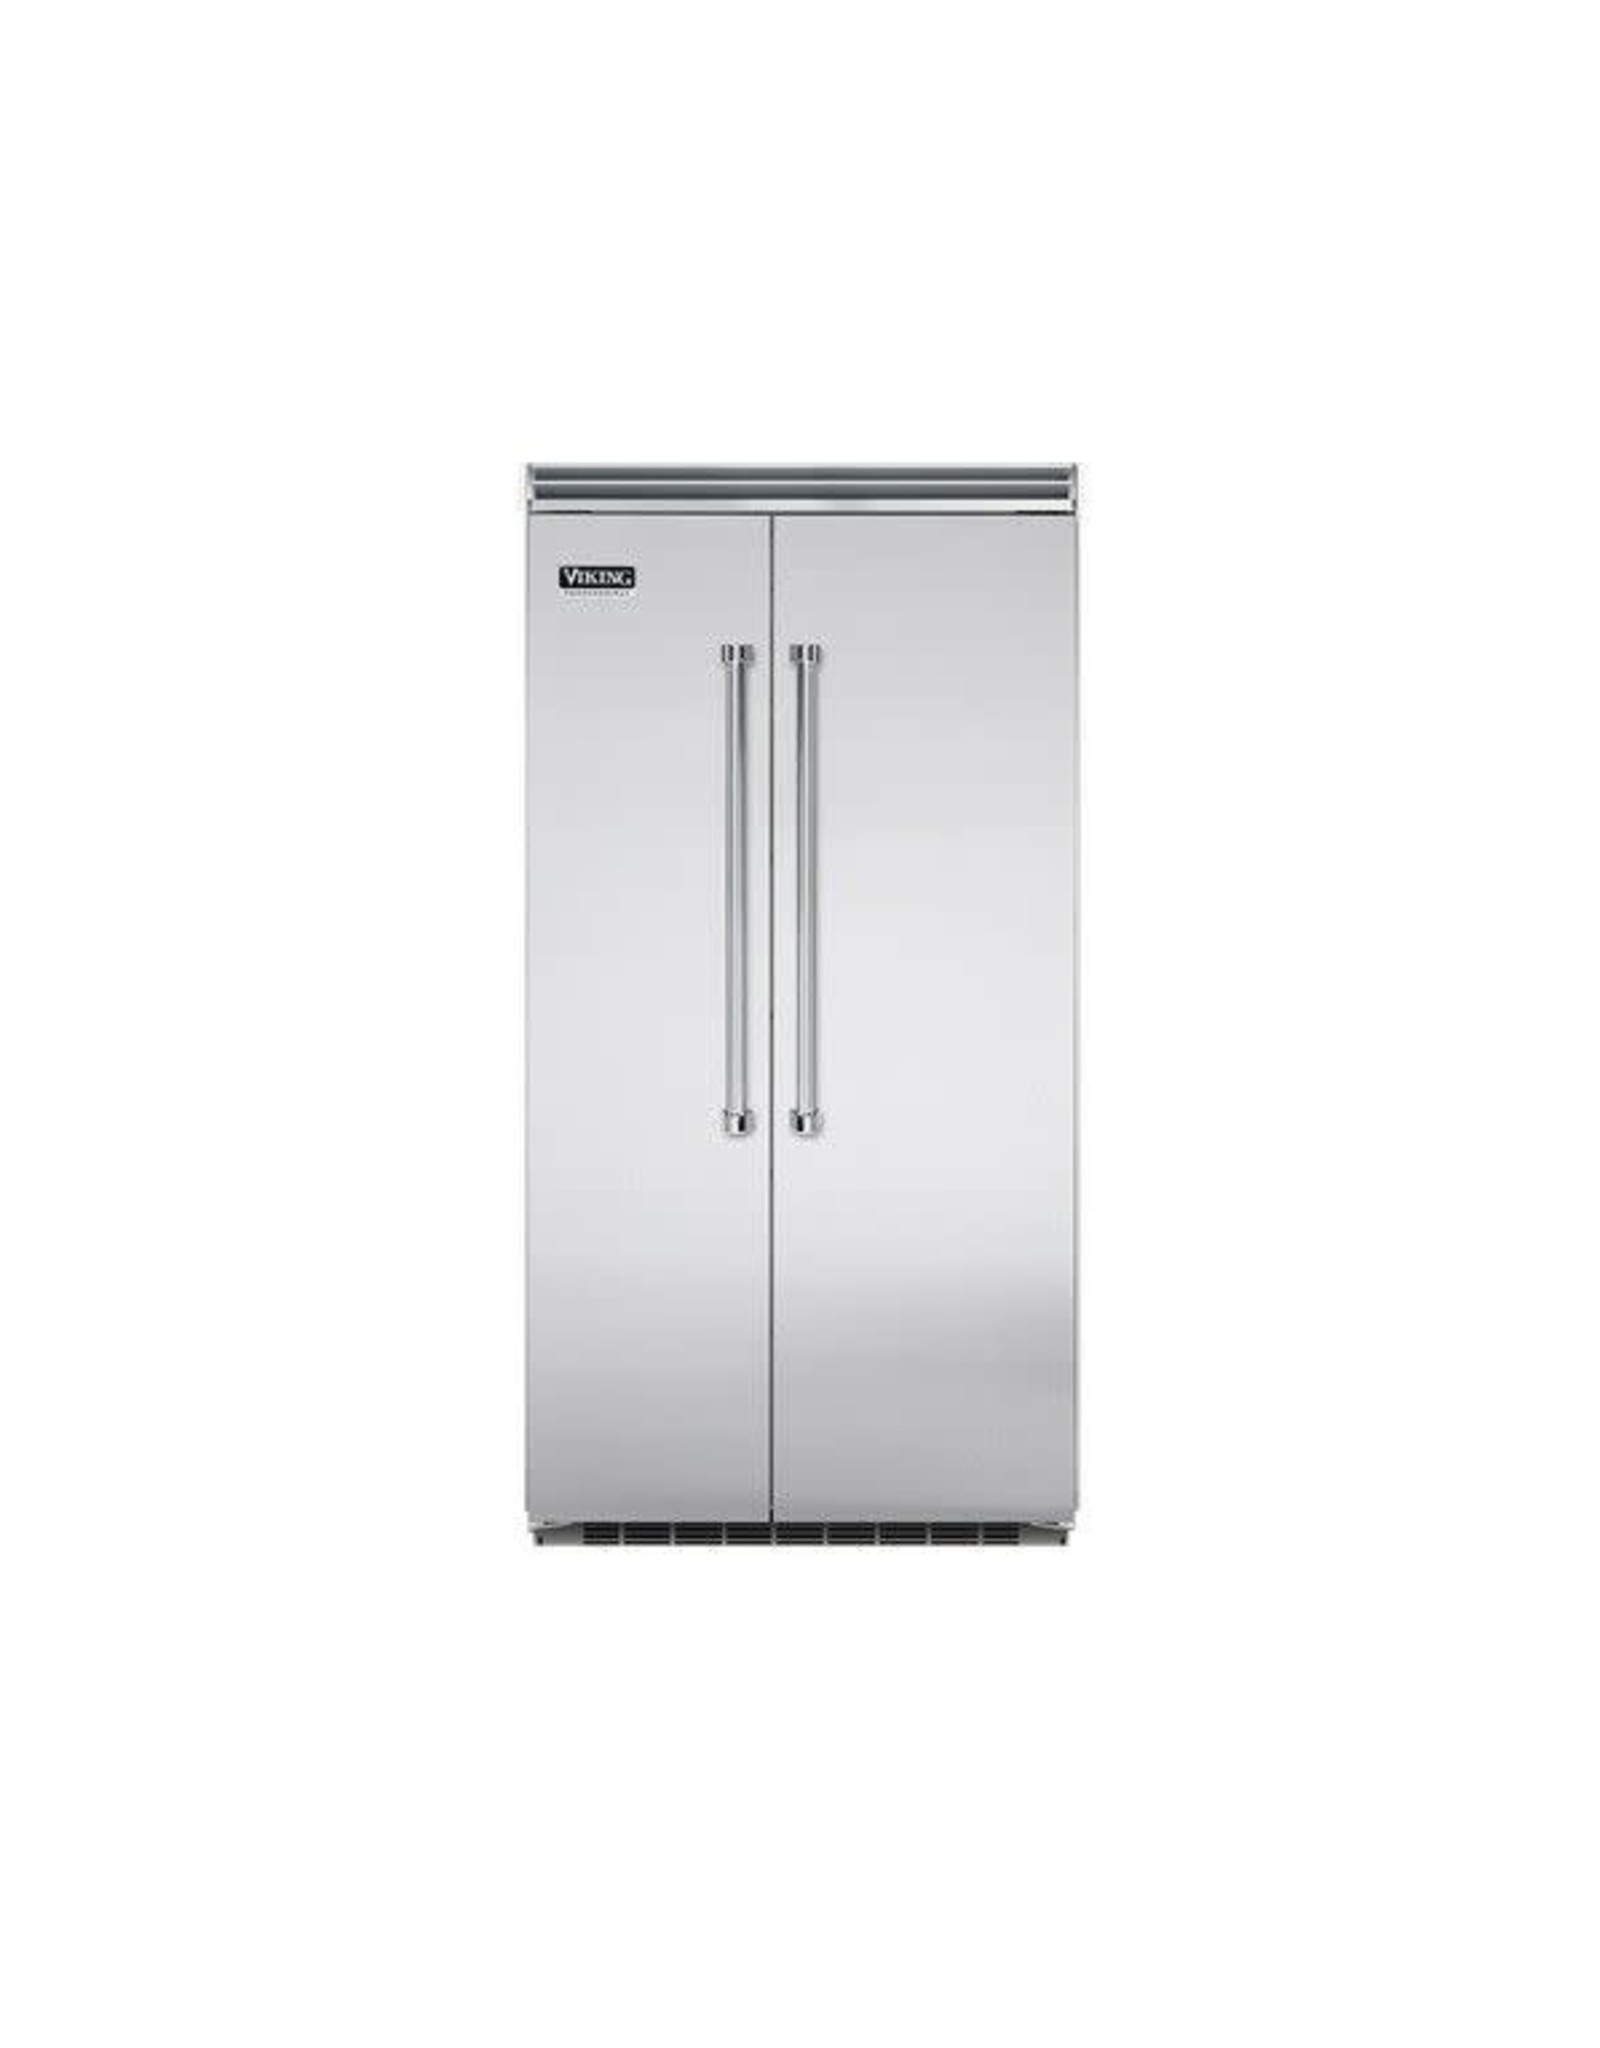 viking VCSB5423SS 42 Inch Built-in Side by Side Refrigerator with 25.3 cu. ft. Capacity, Spillproof Adjustable Glass Shelves, Adjustable Aluminum Door Bins, 2 Humidity Zones, 2 Deli Drawers, Odor Eliminator Evaporator, Air Purifier, Sabbath Mode and ENERGY STAR: